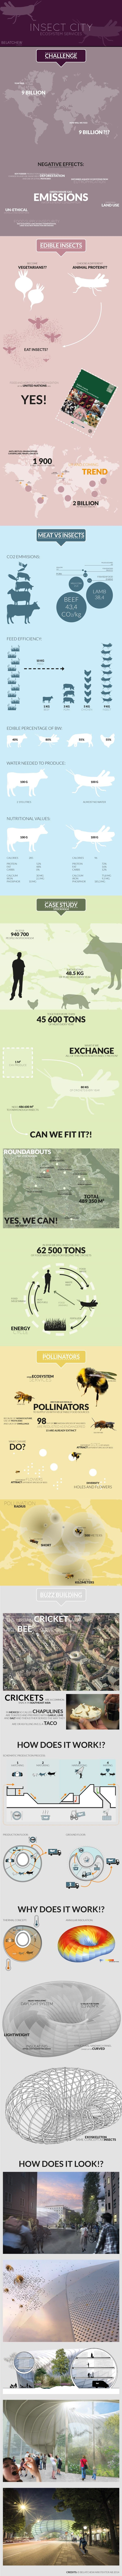 InsectCity Infographic